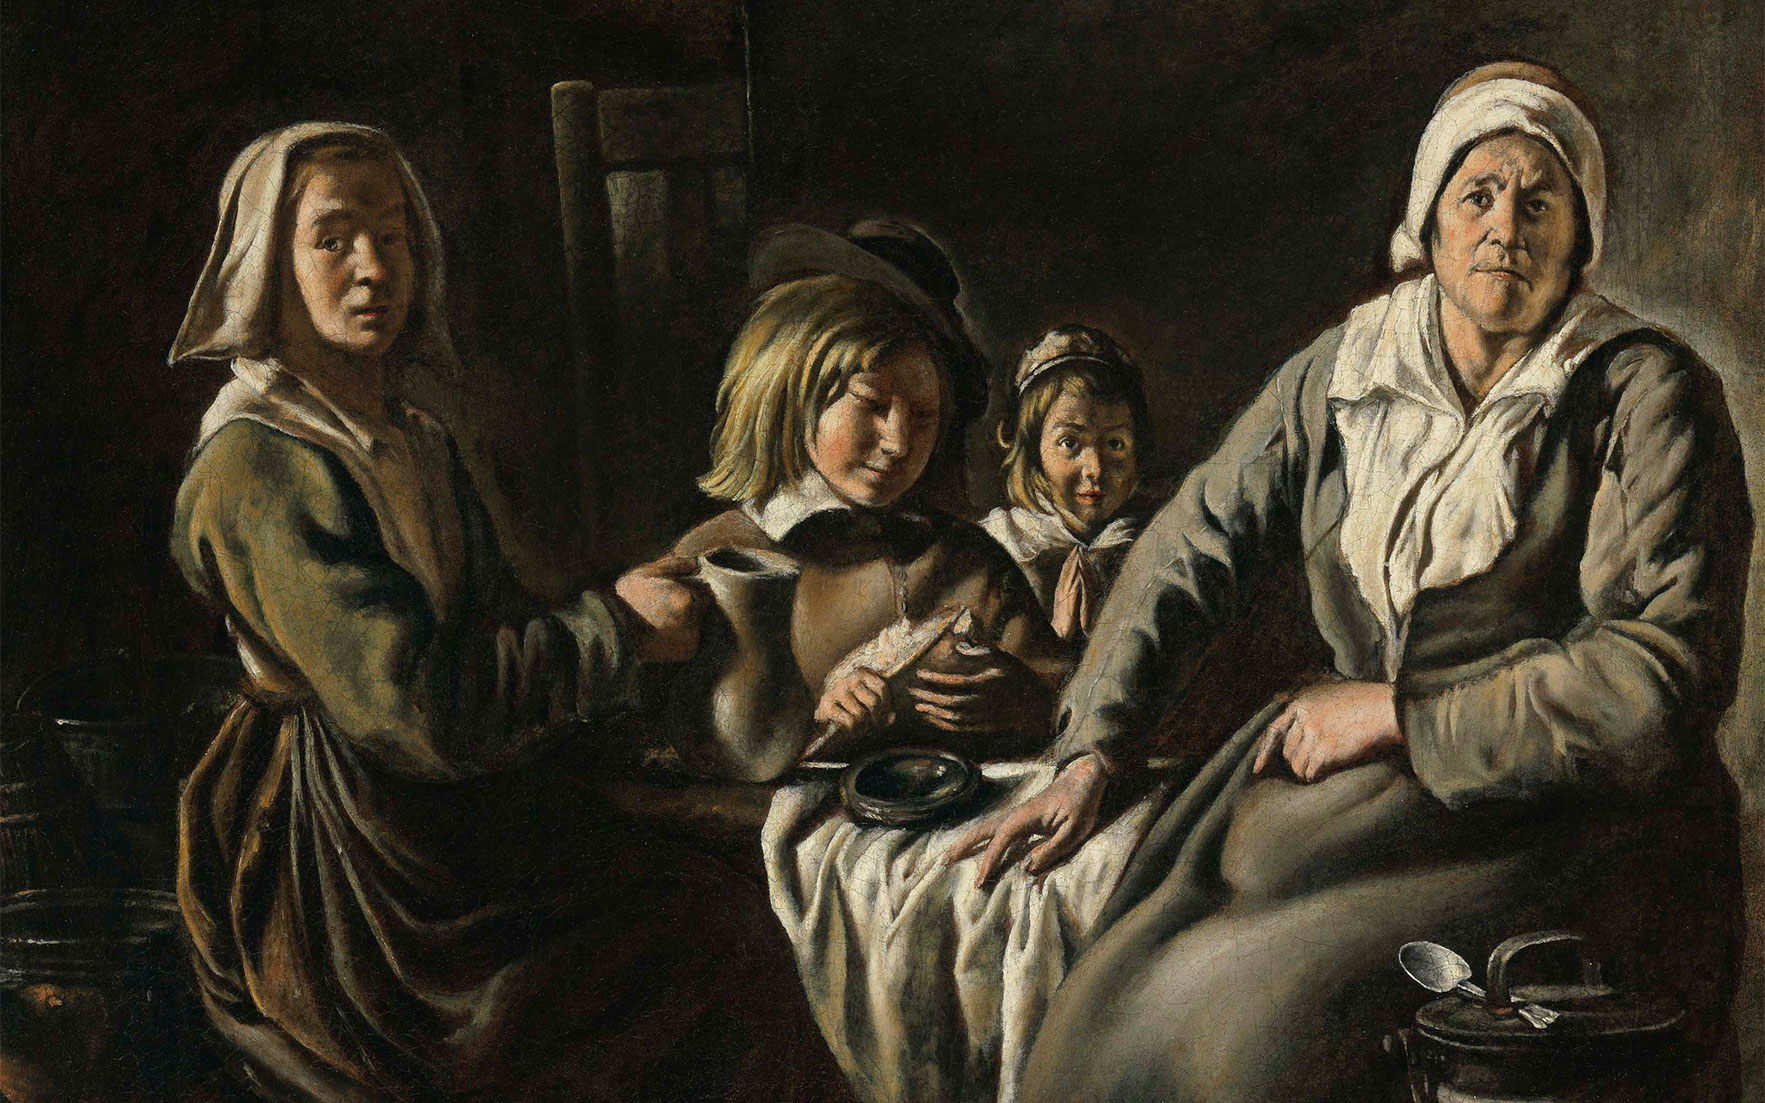 The Le Nain Brothers (Laon c. 1600-1677 Paris), Four Figures at a Table. Oil on canvas, 19⅞ x 24 in (50.5 x 61 cm). Estimate $800,000-1,200,000. This lot is offered in Old Masters on 27 April